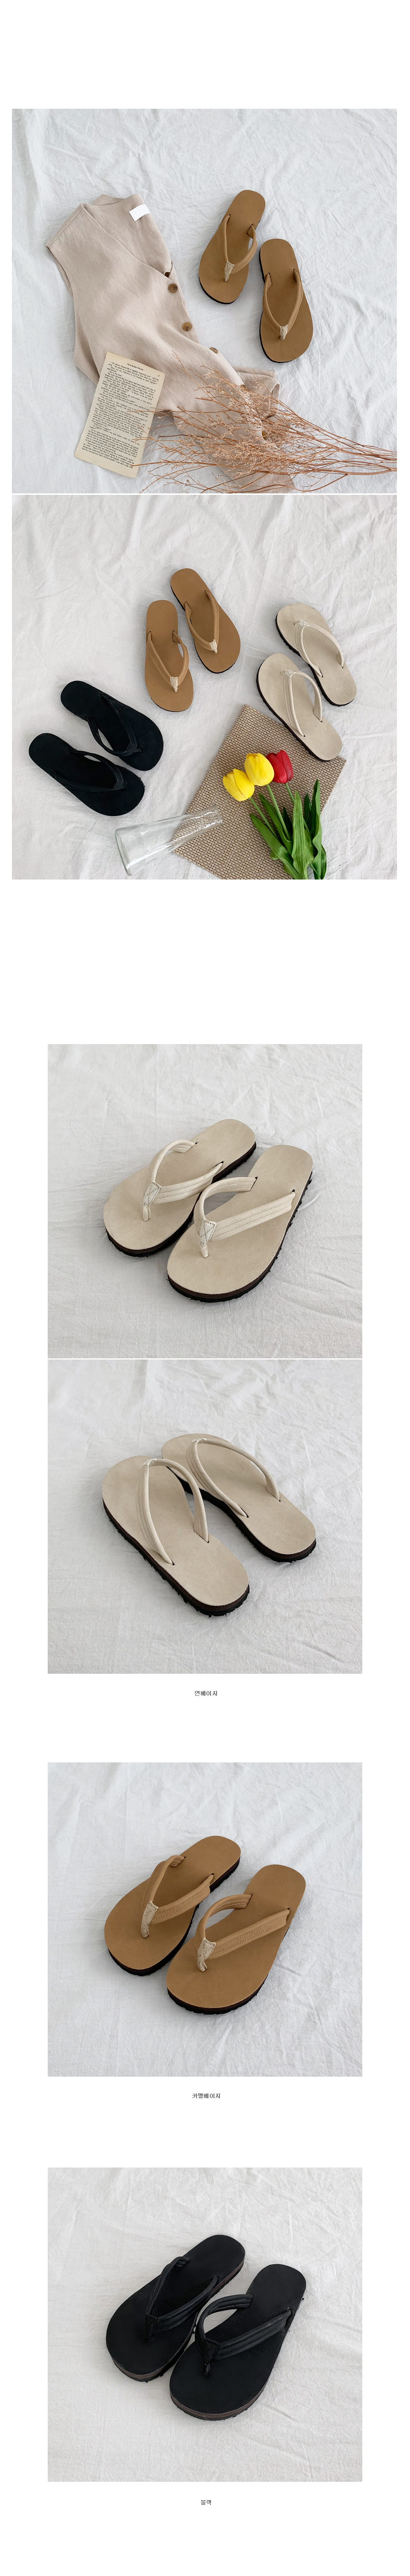 Stasis sandals